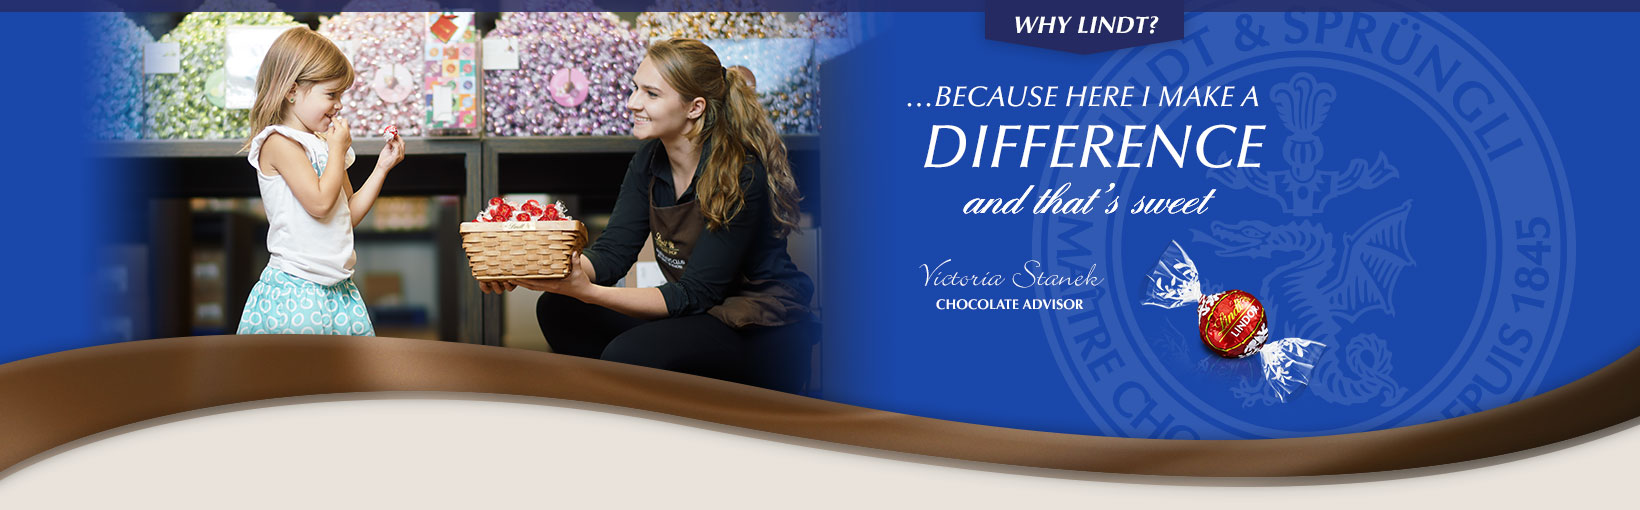 Why Lindt? …Because here I make a difference and that's sweet. Victoria Stanek, Chocolate Advisor